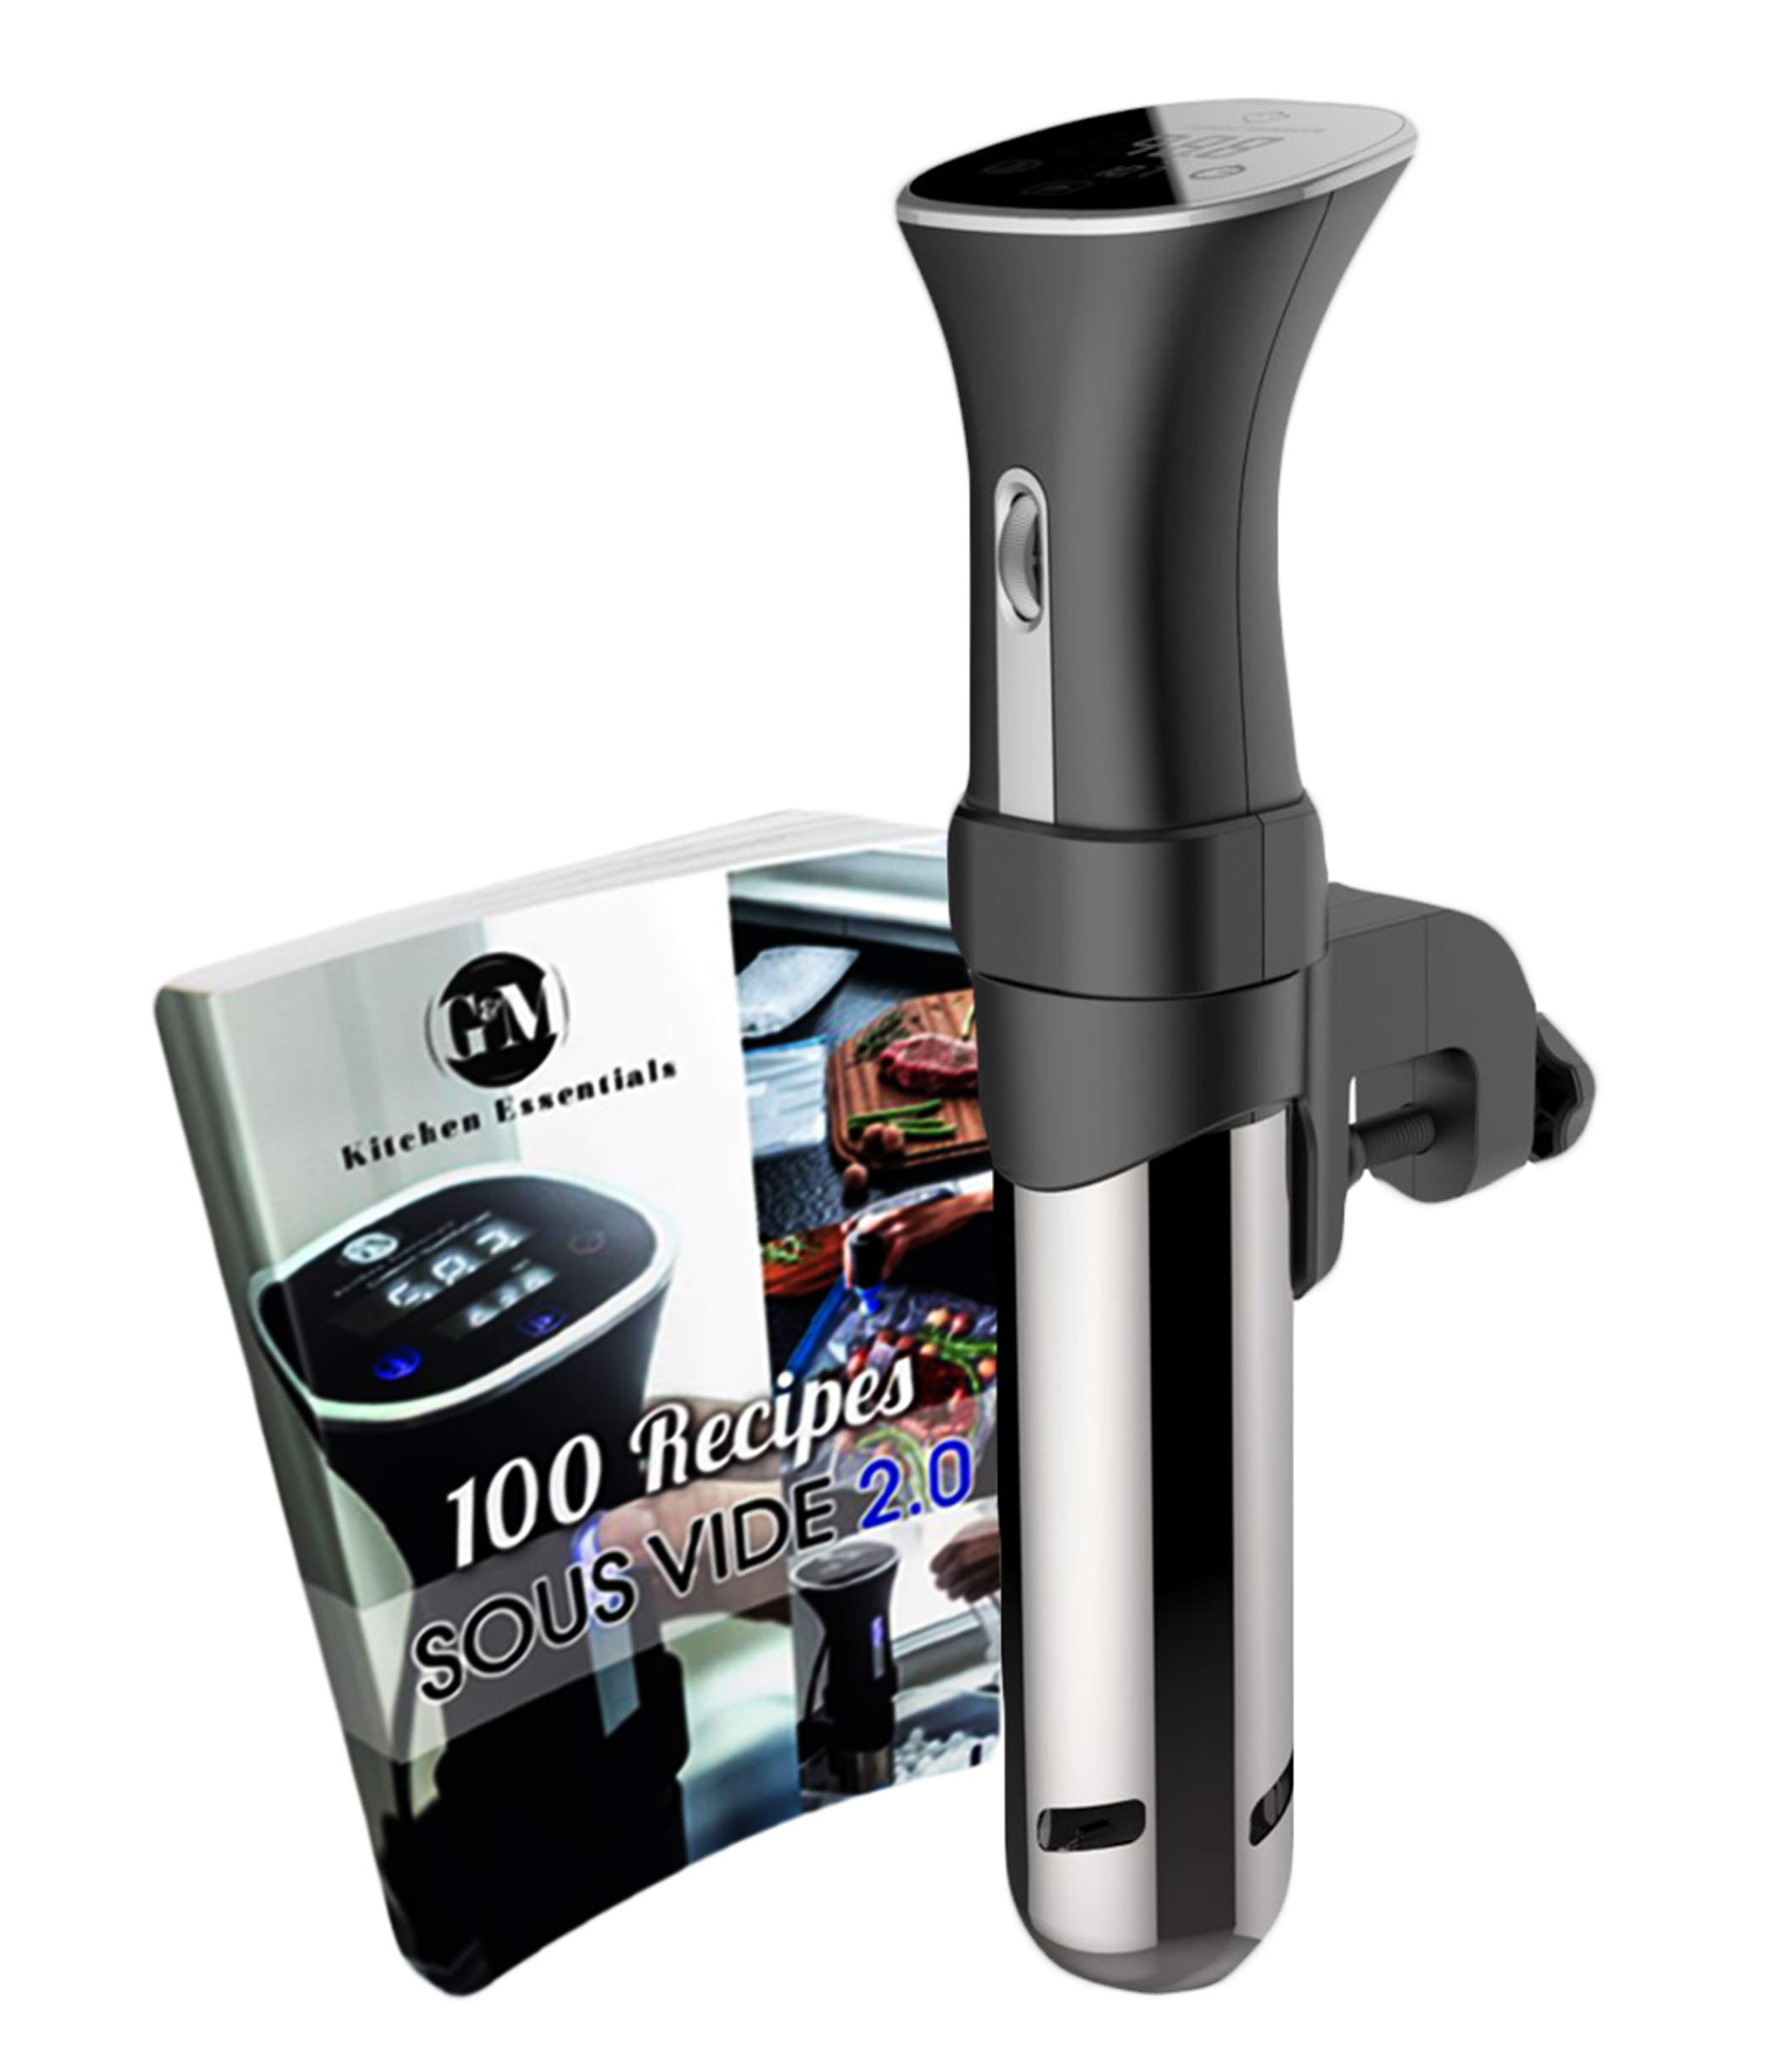 Sous Vide cooker Machine Thermal Immersion Circulator: Precision and Temperature Controller for Easy, Healthy & Even Cooking - BONUS 100 RECIPE COOKBOOK - Black and Stainless, 120 Volts. by G&M Kitchen Essentials